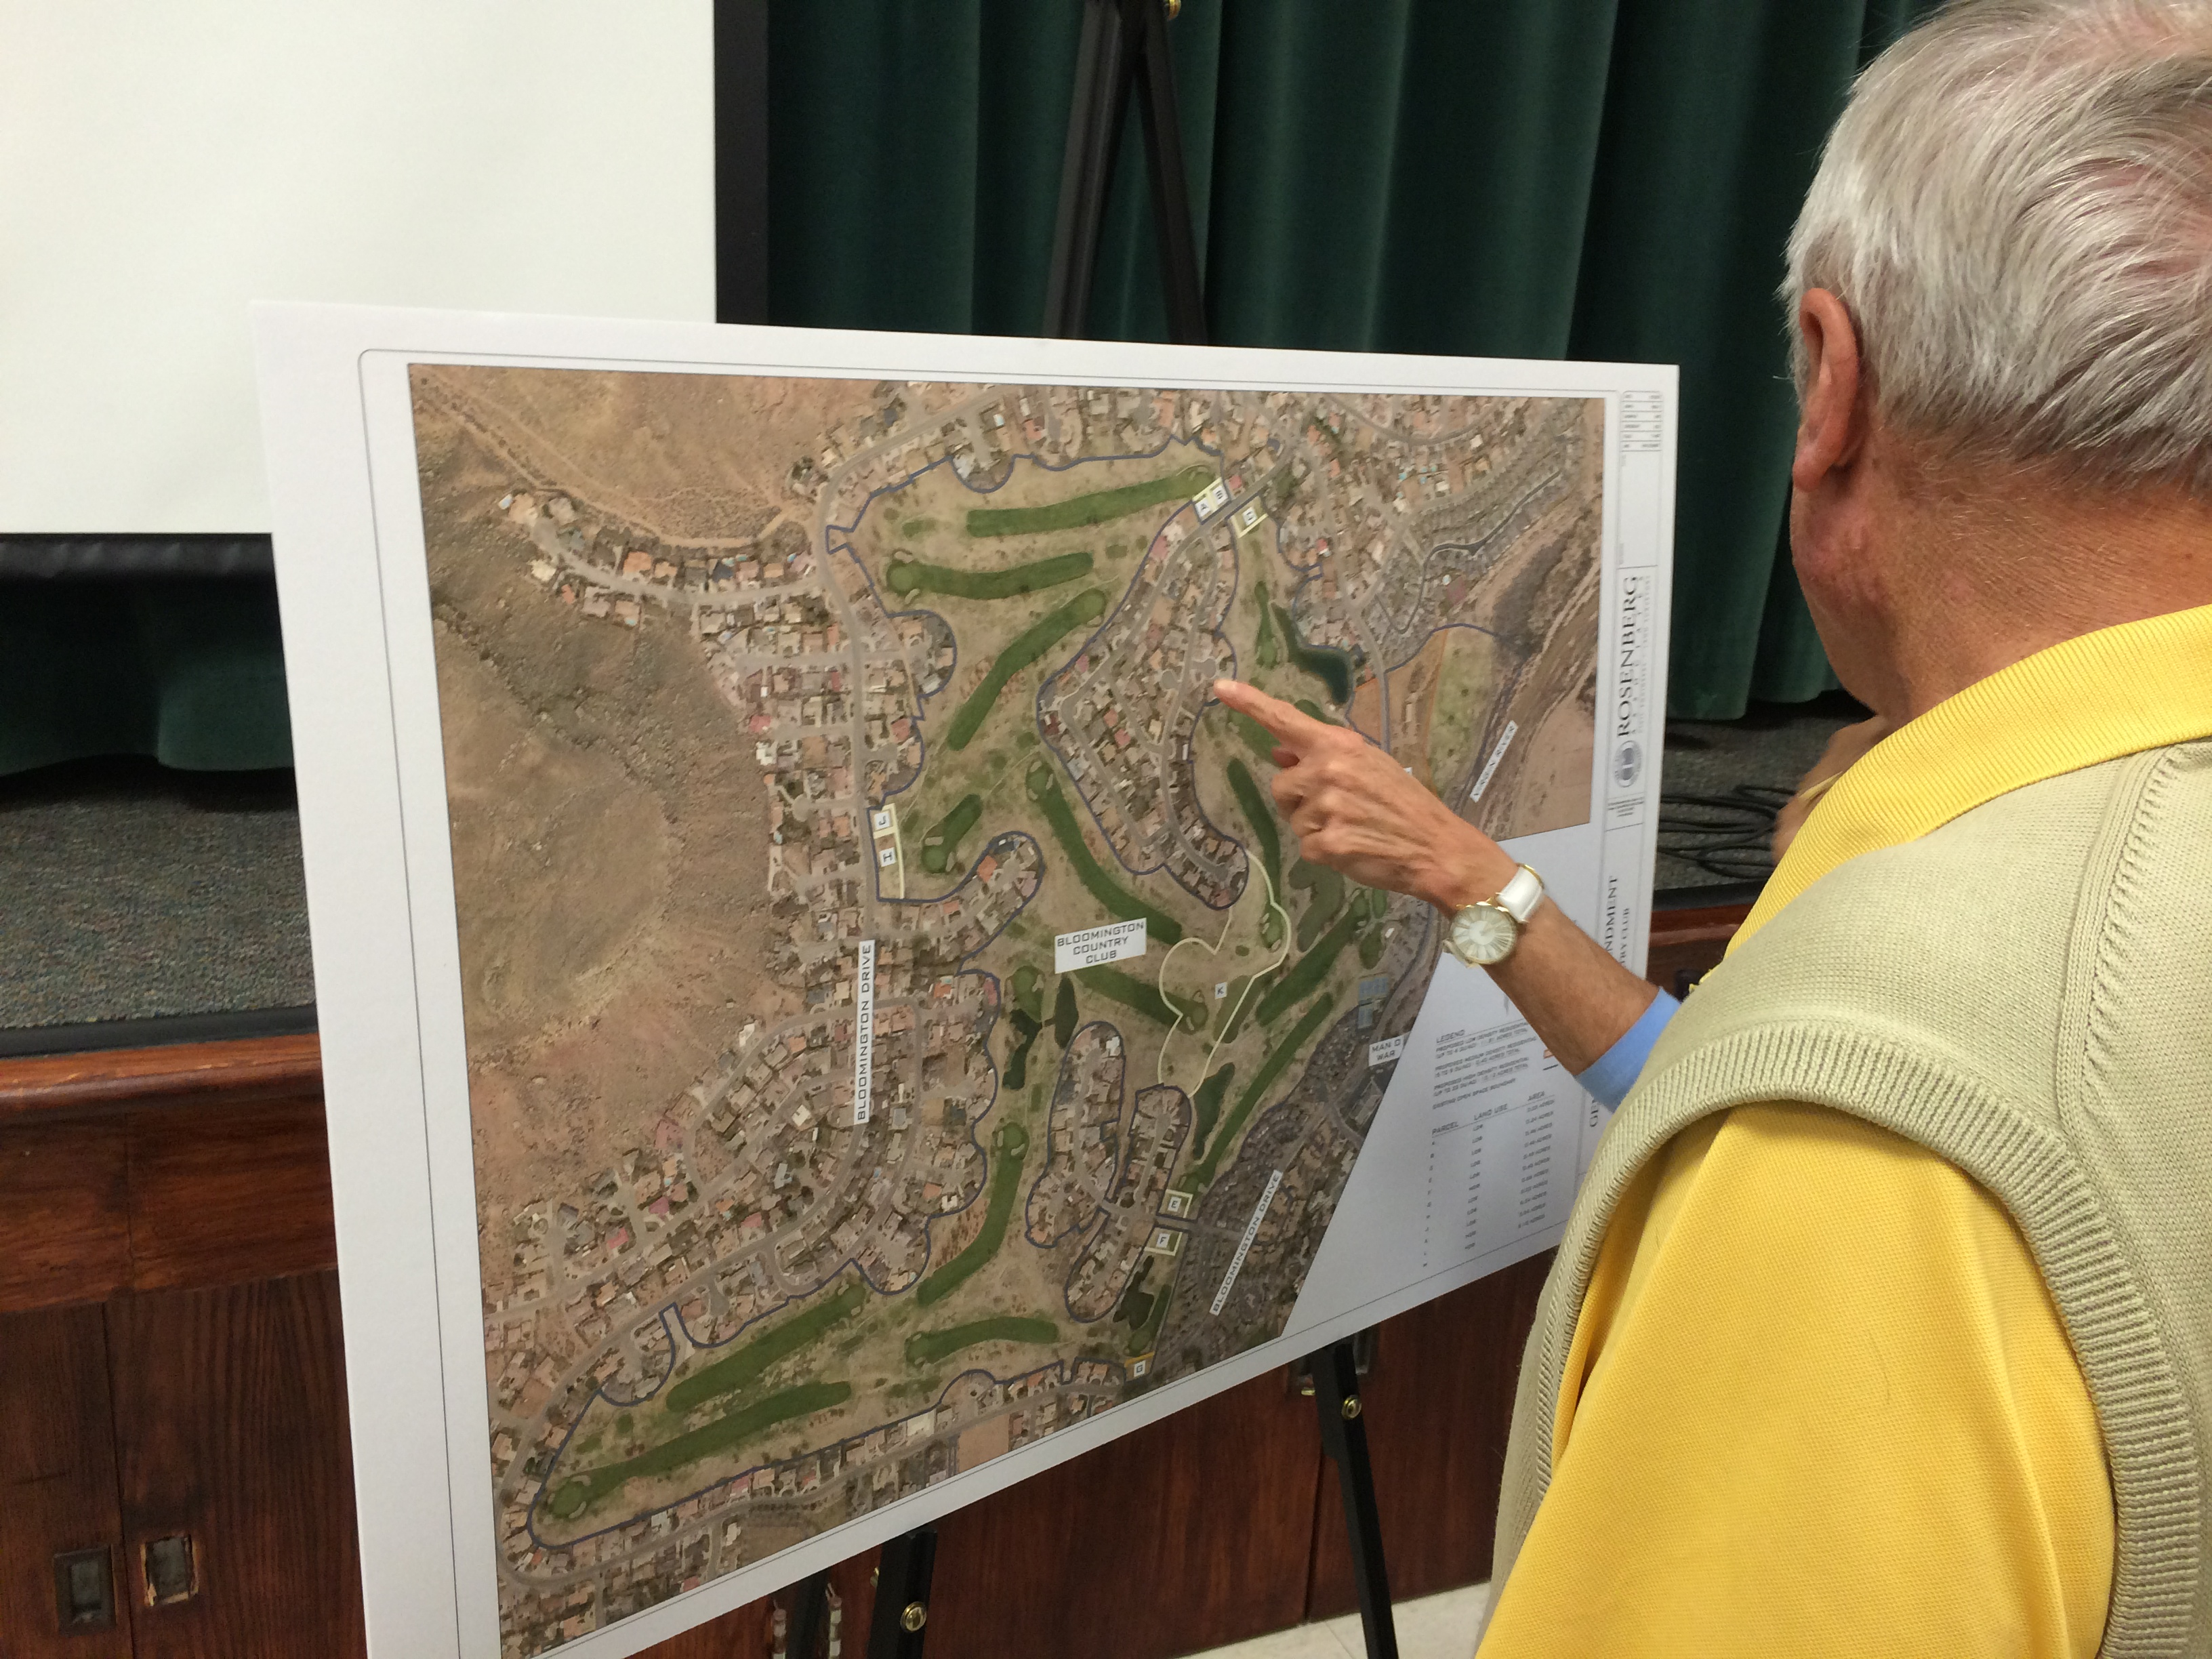 Residents of the Bloomington community  look at diagrams of proposed general plan amendments to allow additional residential housing appurtenant to Bloomington Country Club, presented by Developer Darcy Stewart at a community meeting at Bloomington Elementary School in St. George, Utah, Oct. 1, 2015 | Photo by JJ Deforest, St. George News